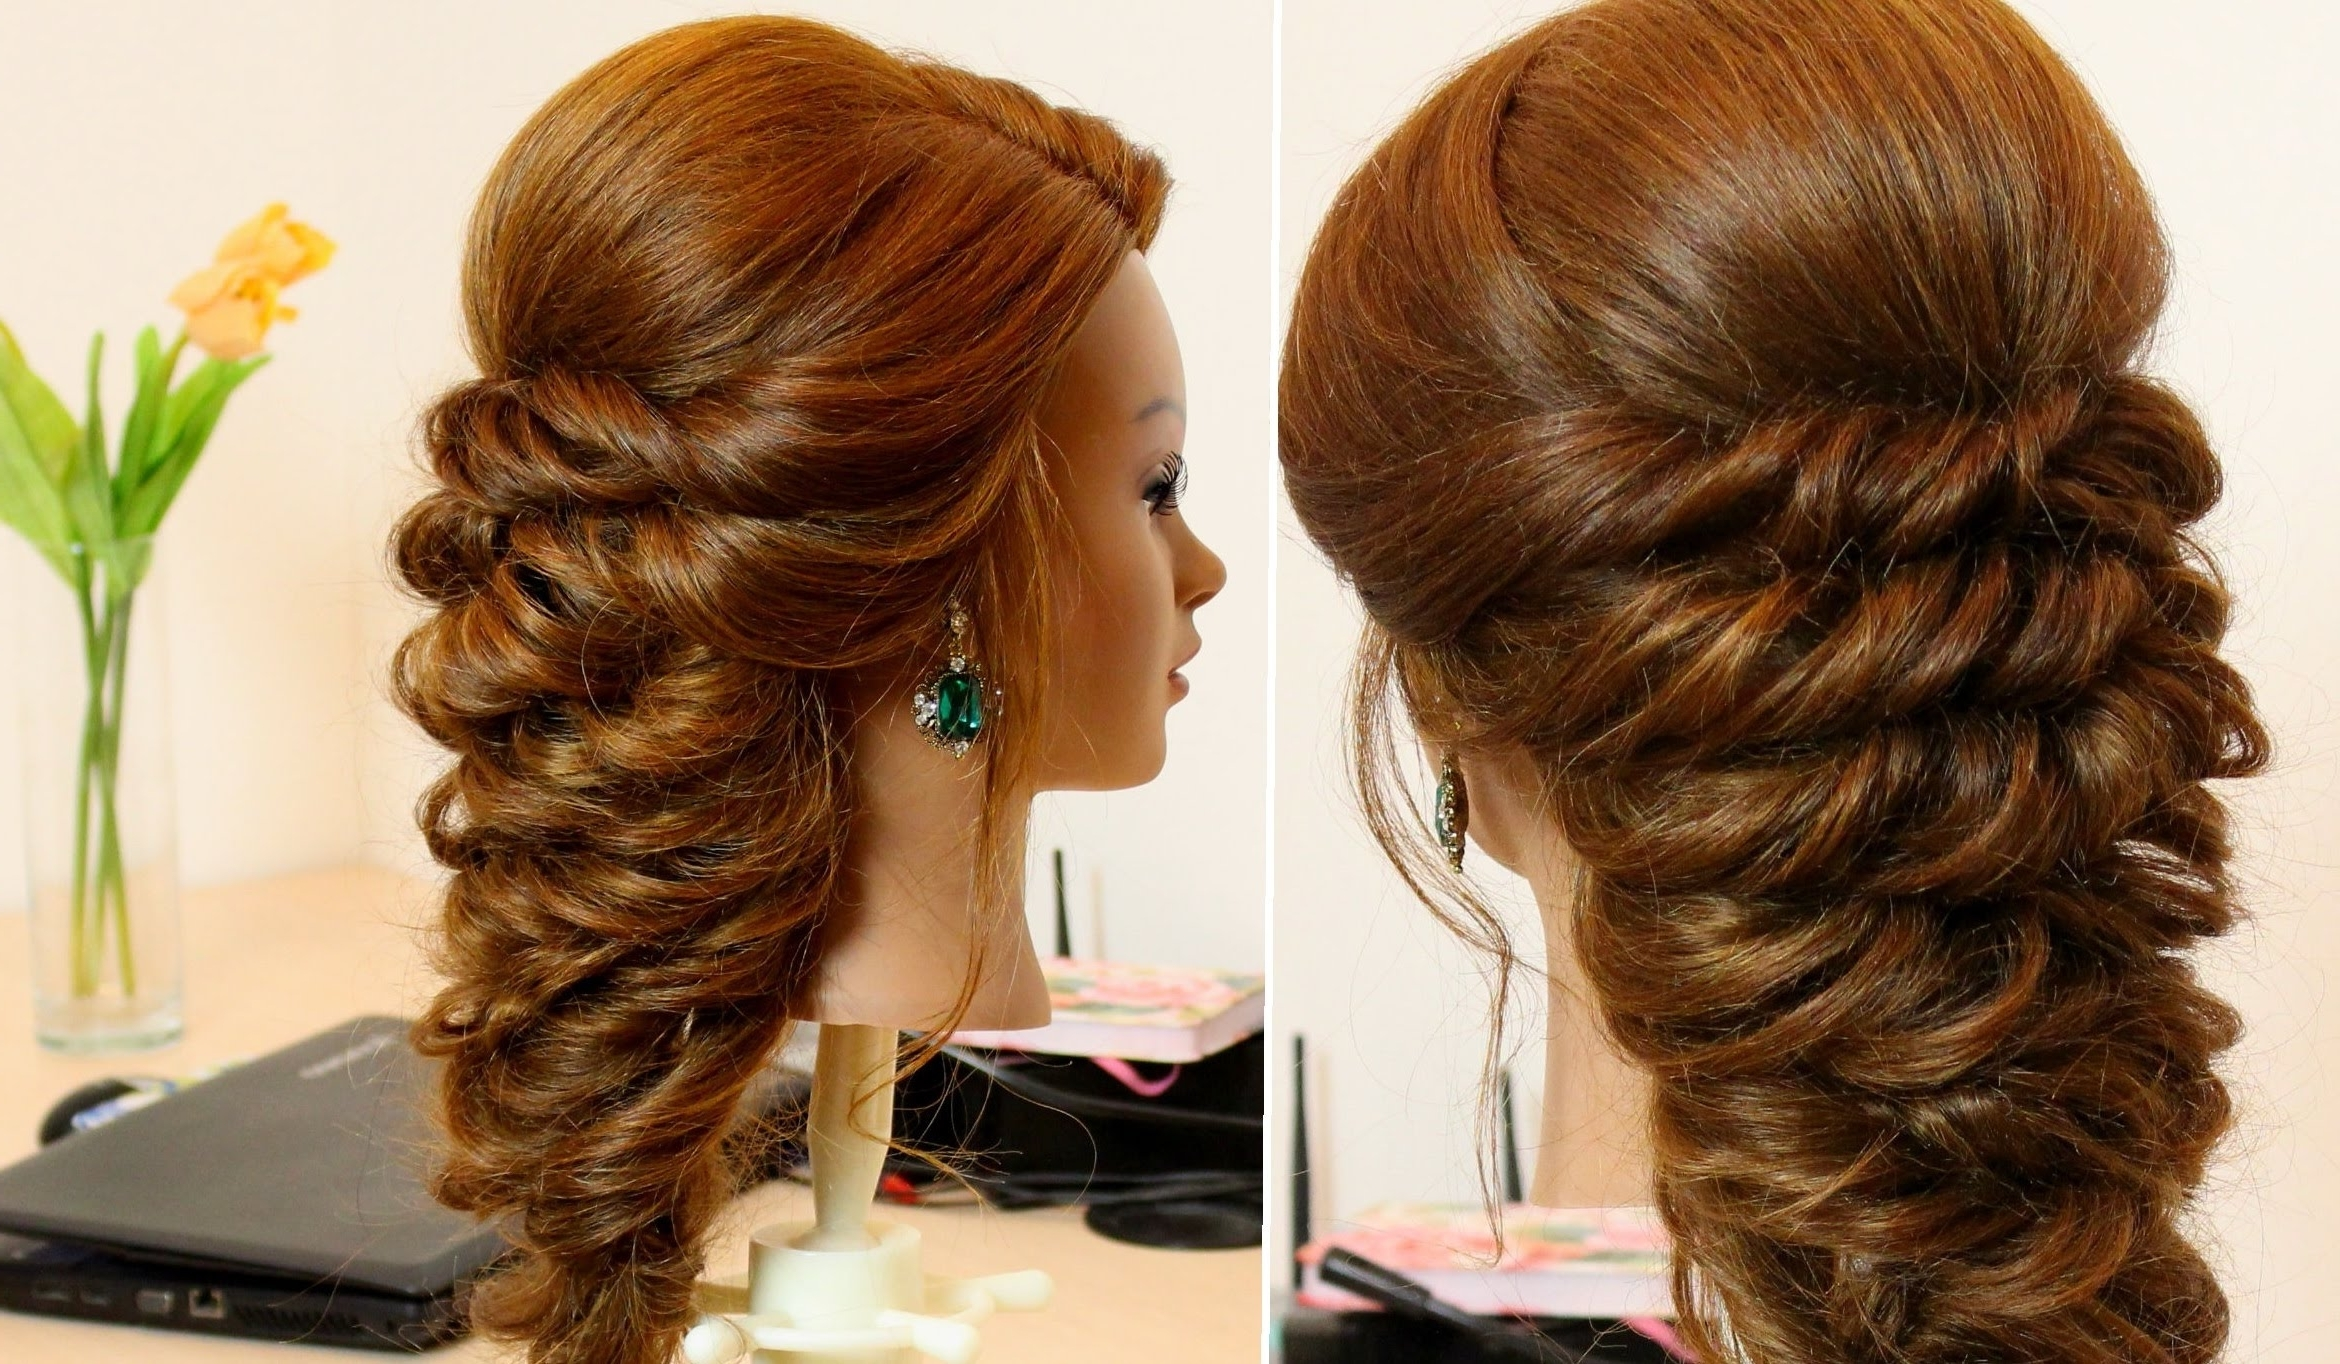 Easy Hairstyle For Long Hair Tutorial – Youtube Pertaining To Updos For Long Hair (View 7 of 15)